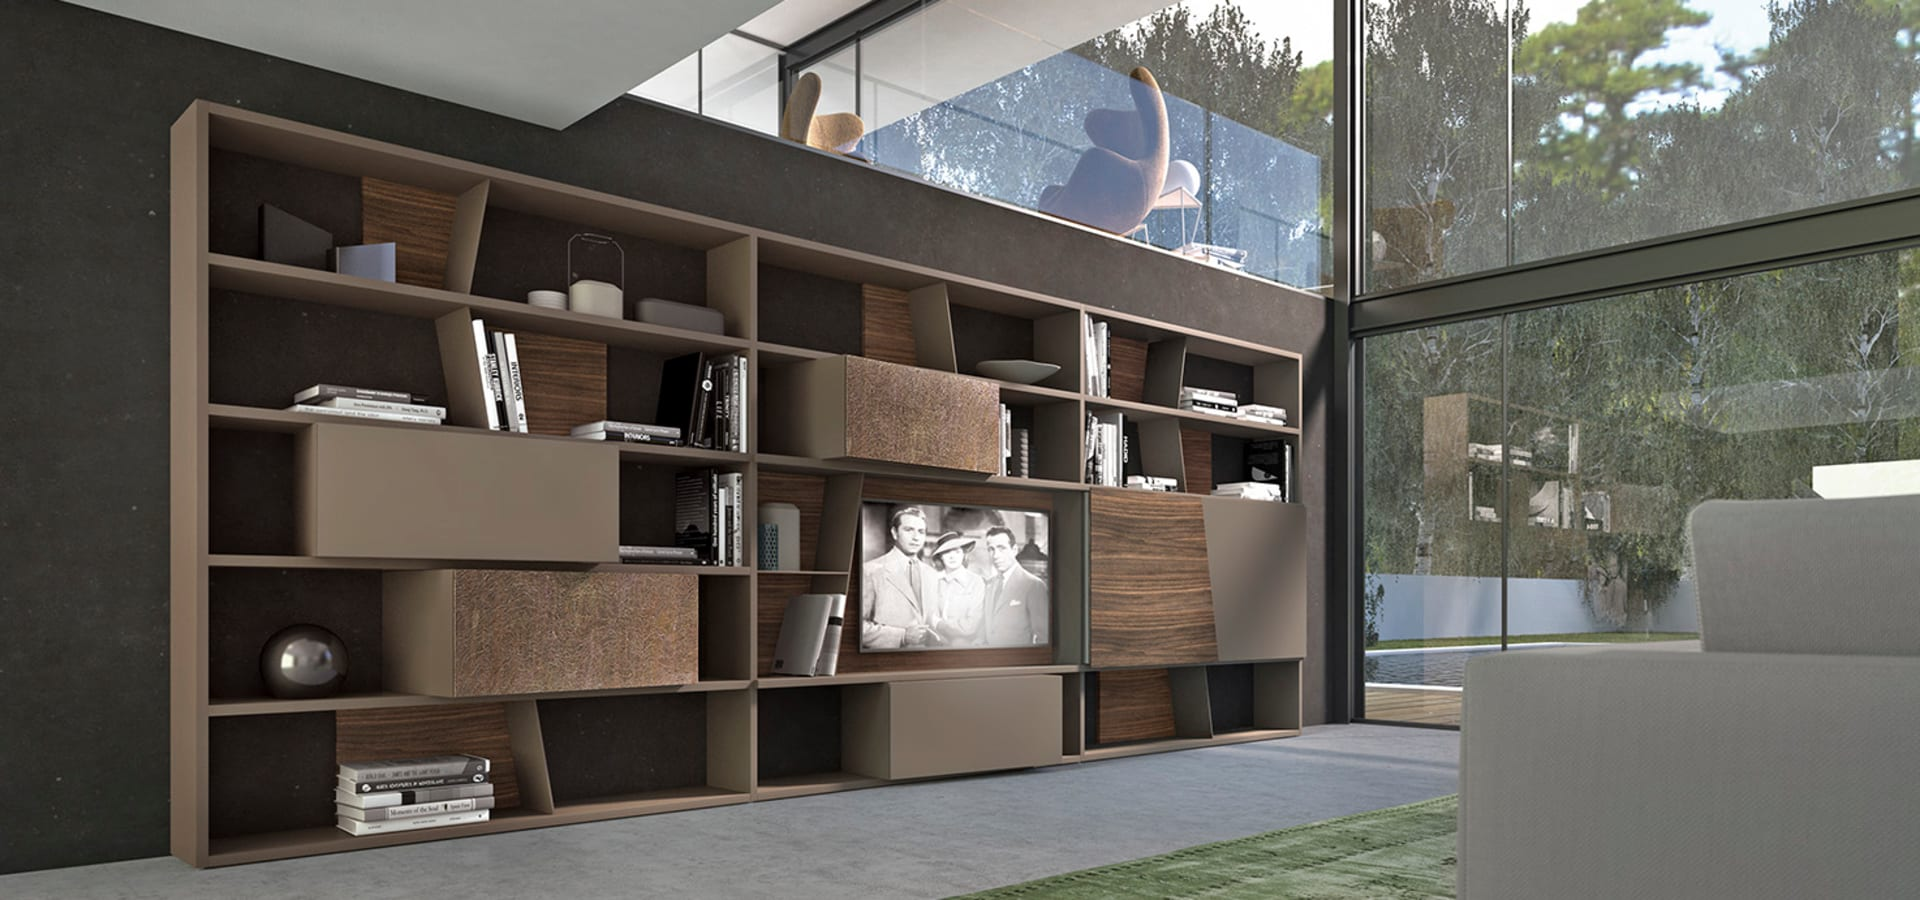 Inclinart di presotto industrie mobili spa homify for Www presotto it